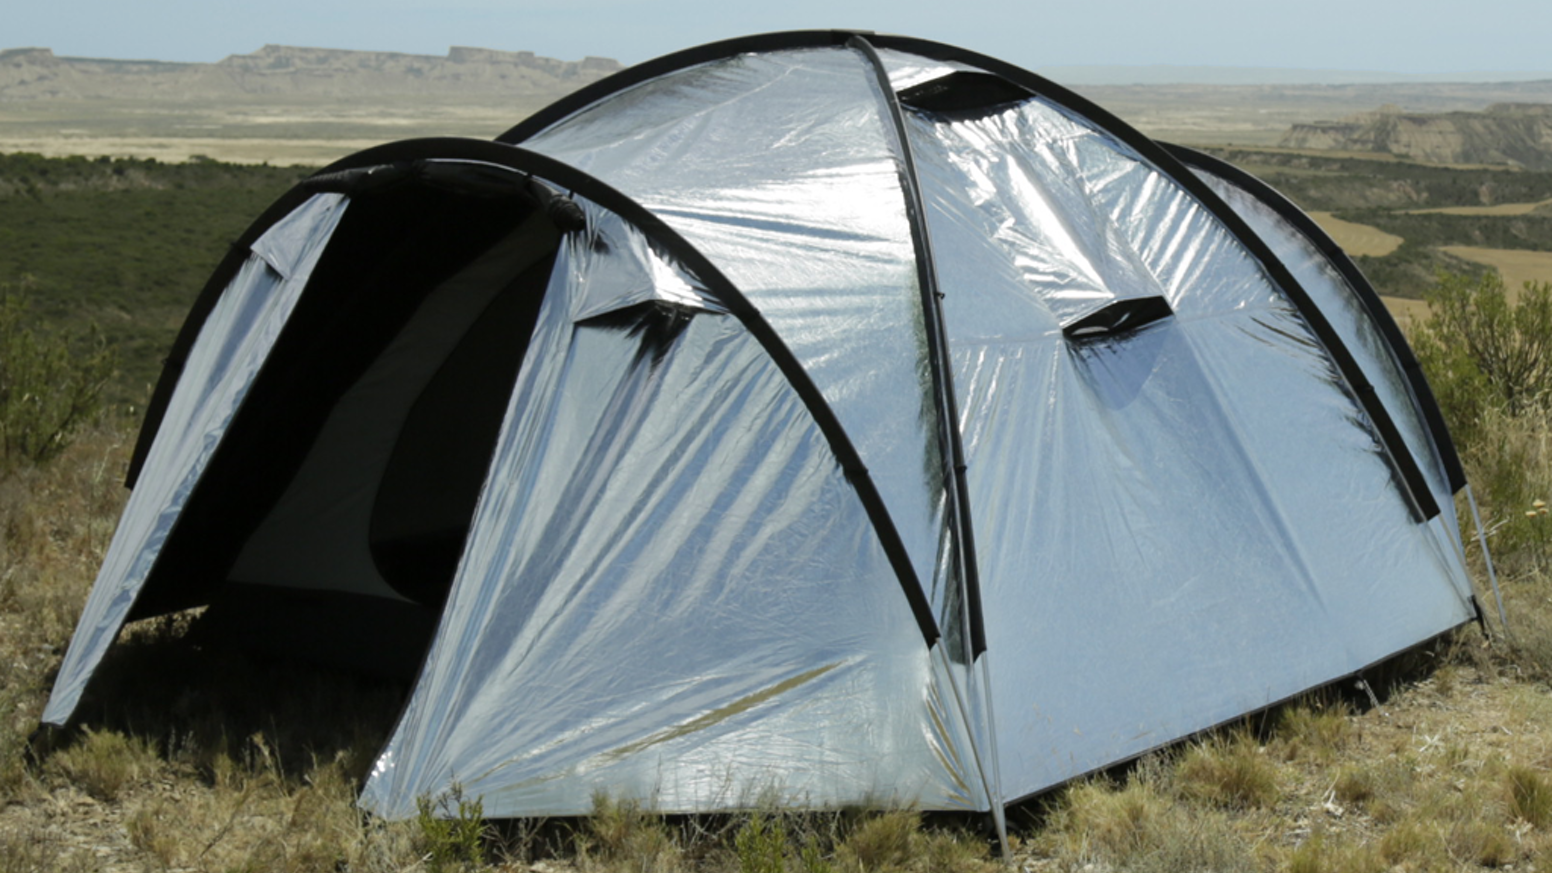 Ultra Reflective Fly Fabric Built In Fans The Best Possible Sleep When